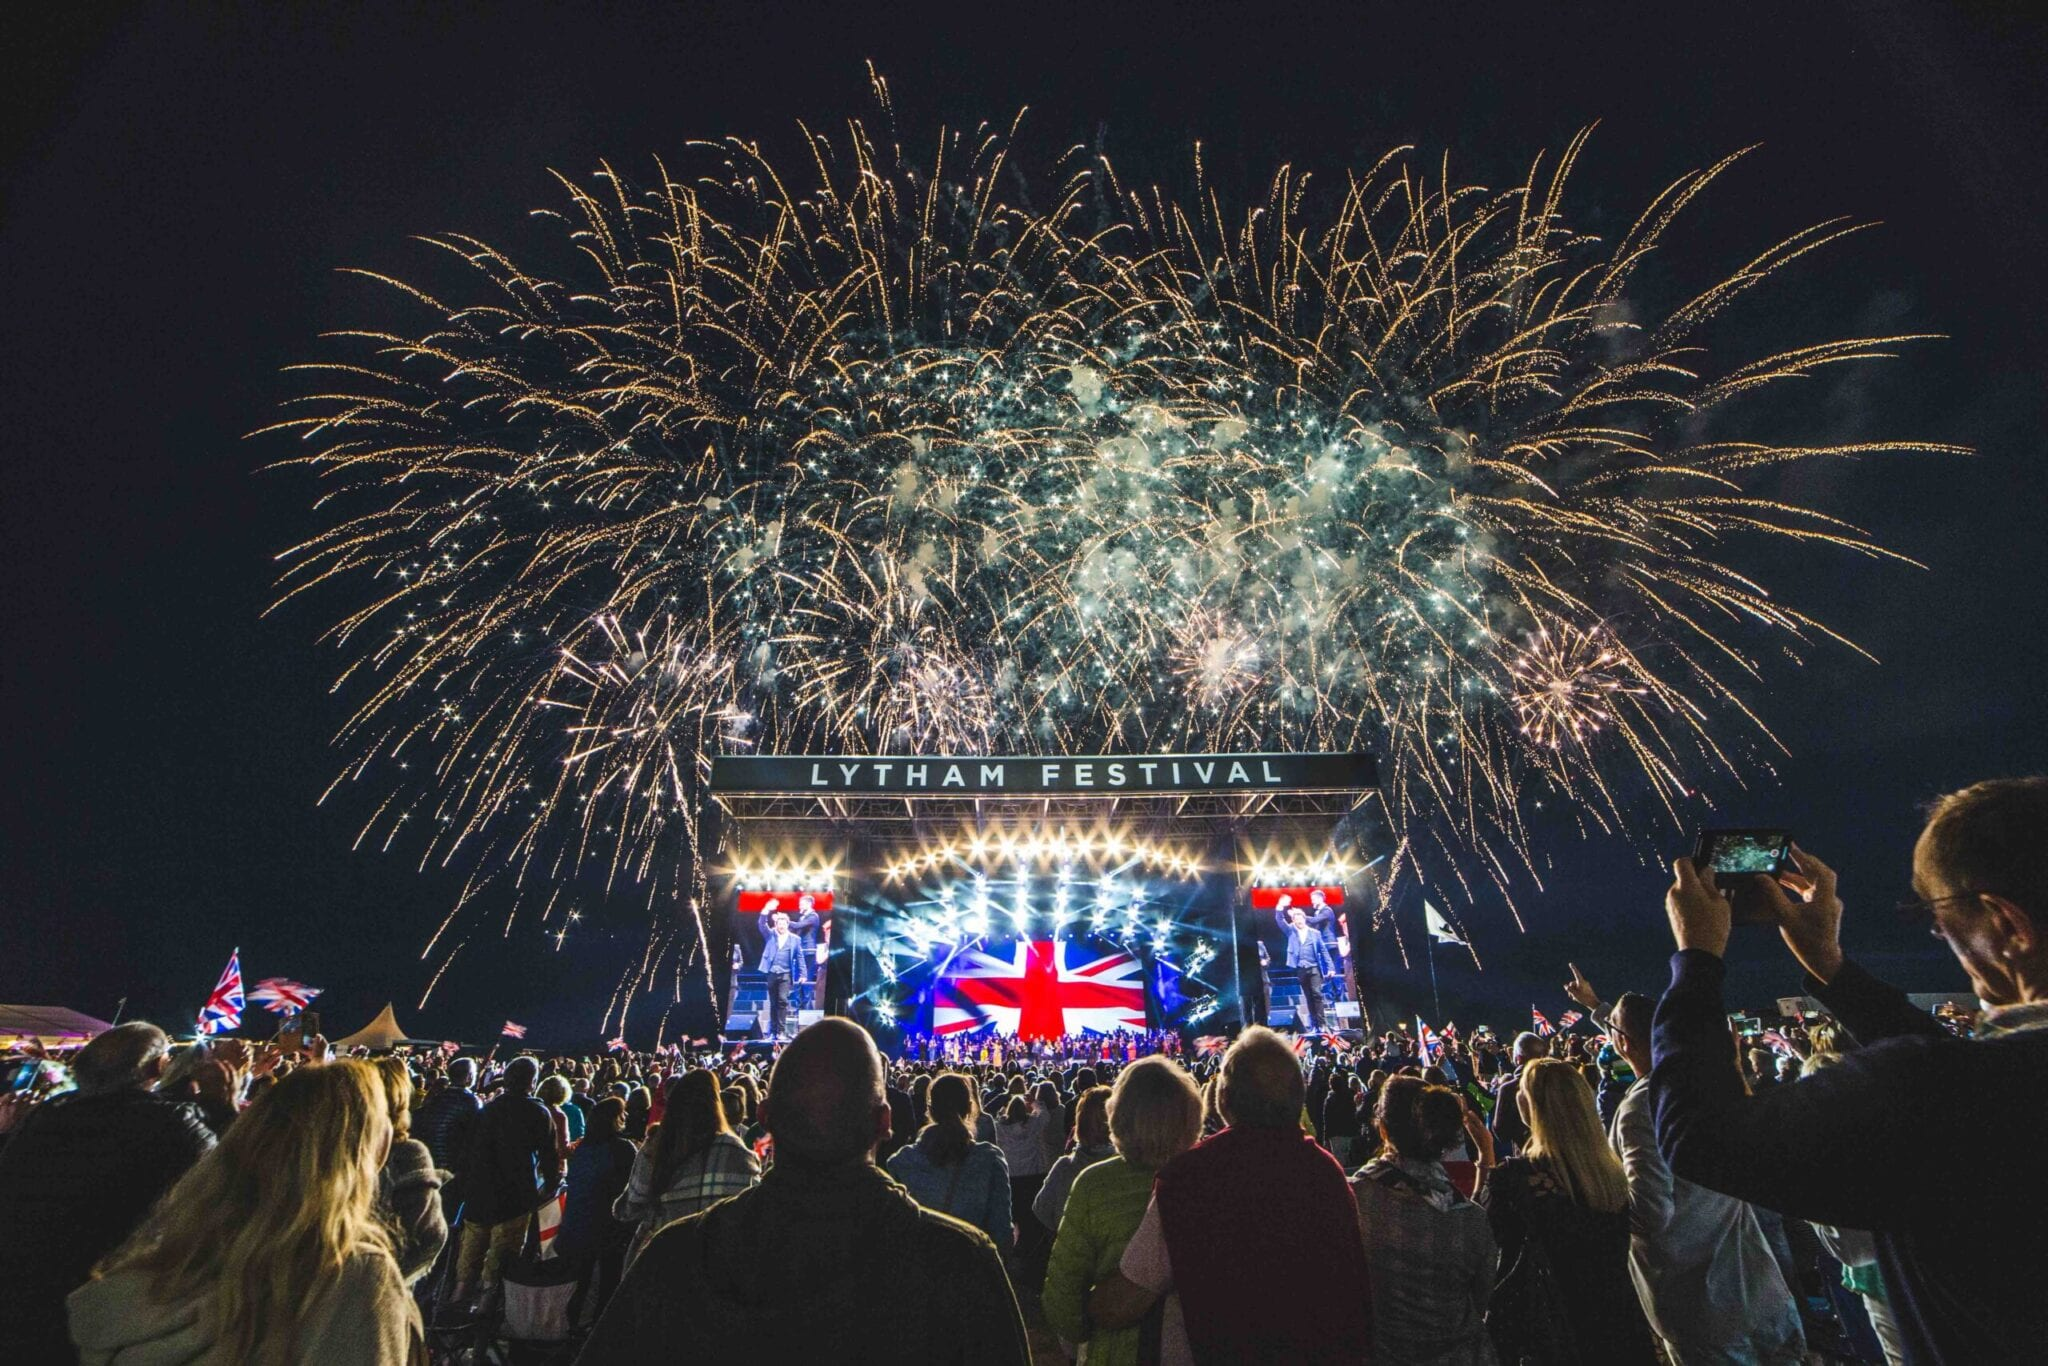 PLANS TO EXPAND LYTHAM FESTIVAL INTO A 10 DAY EVENT FOR 2022